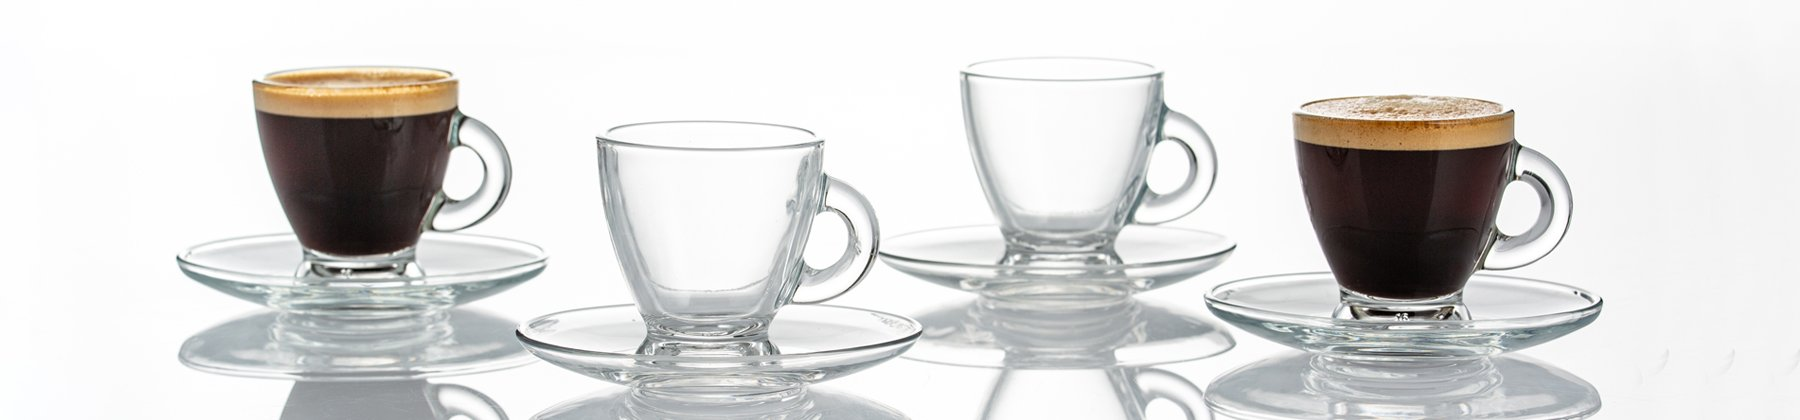 Photo of Ravenhead cappuccino & espresso glasses lined up on a table.